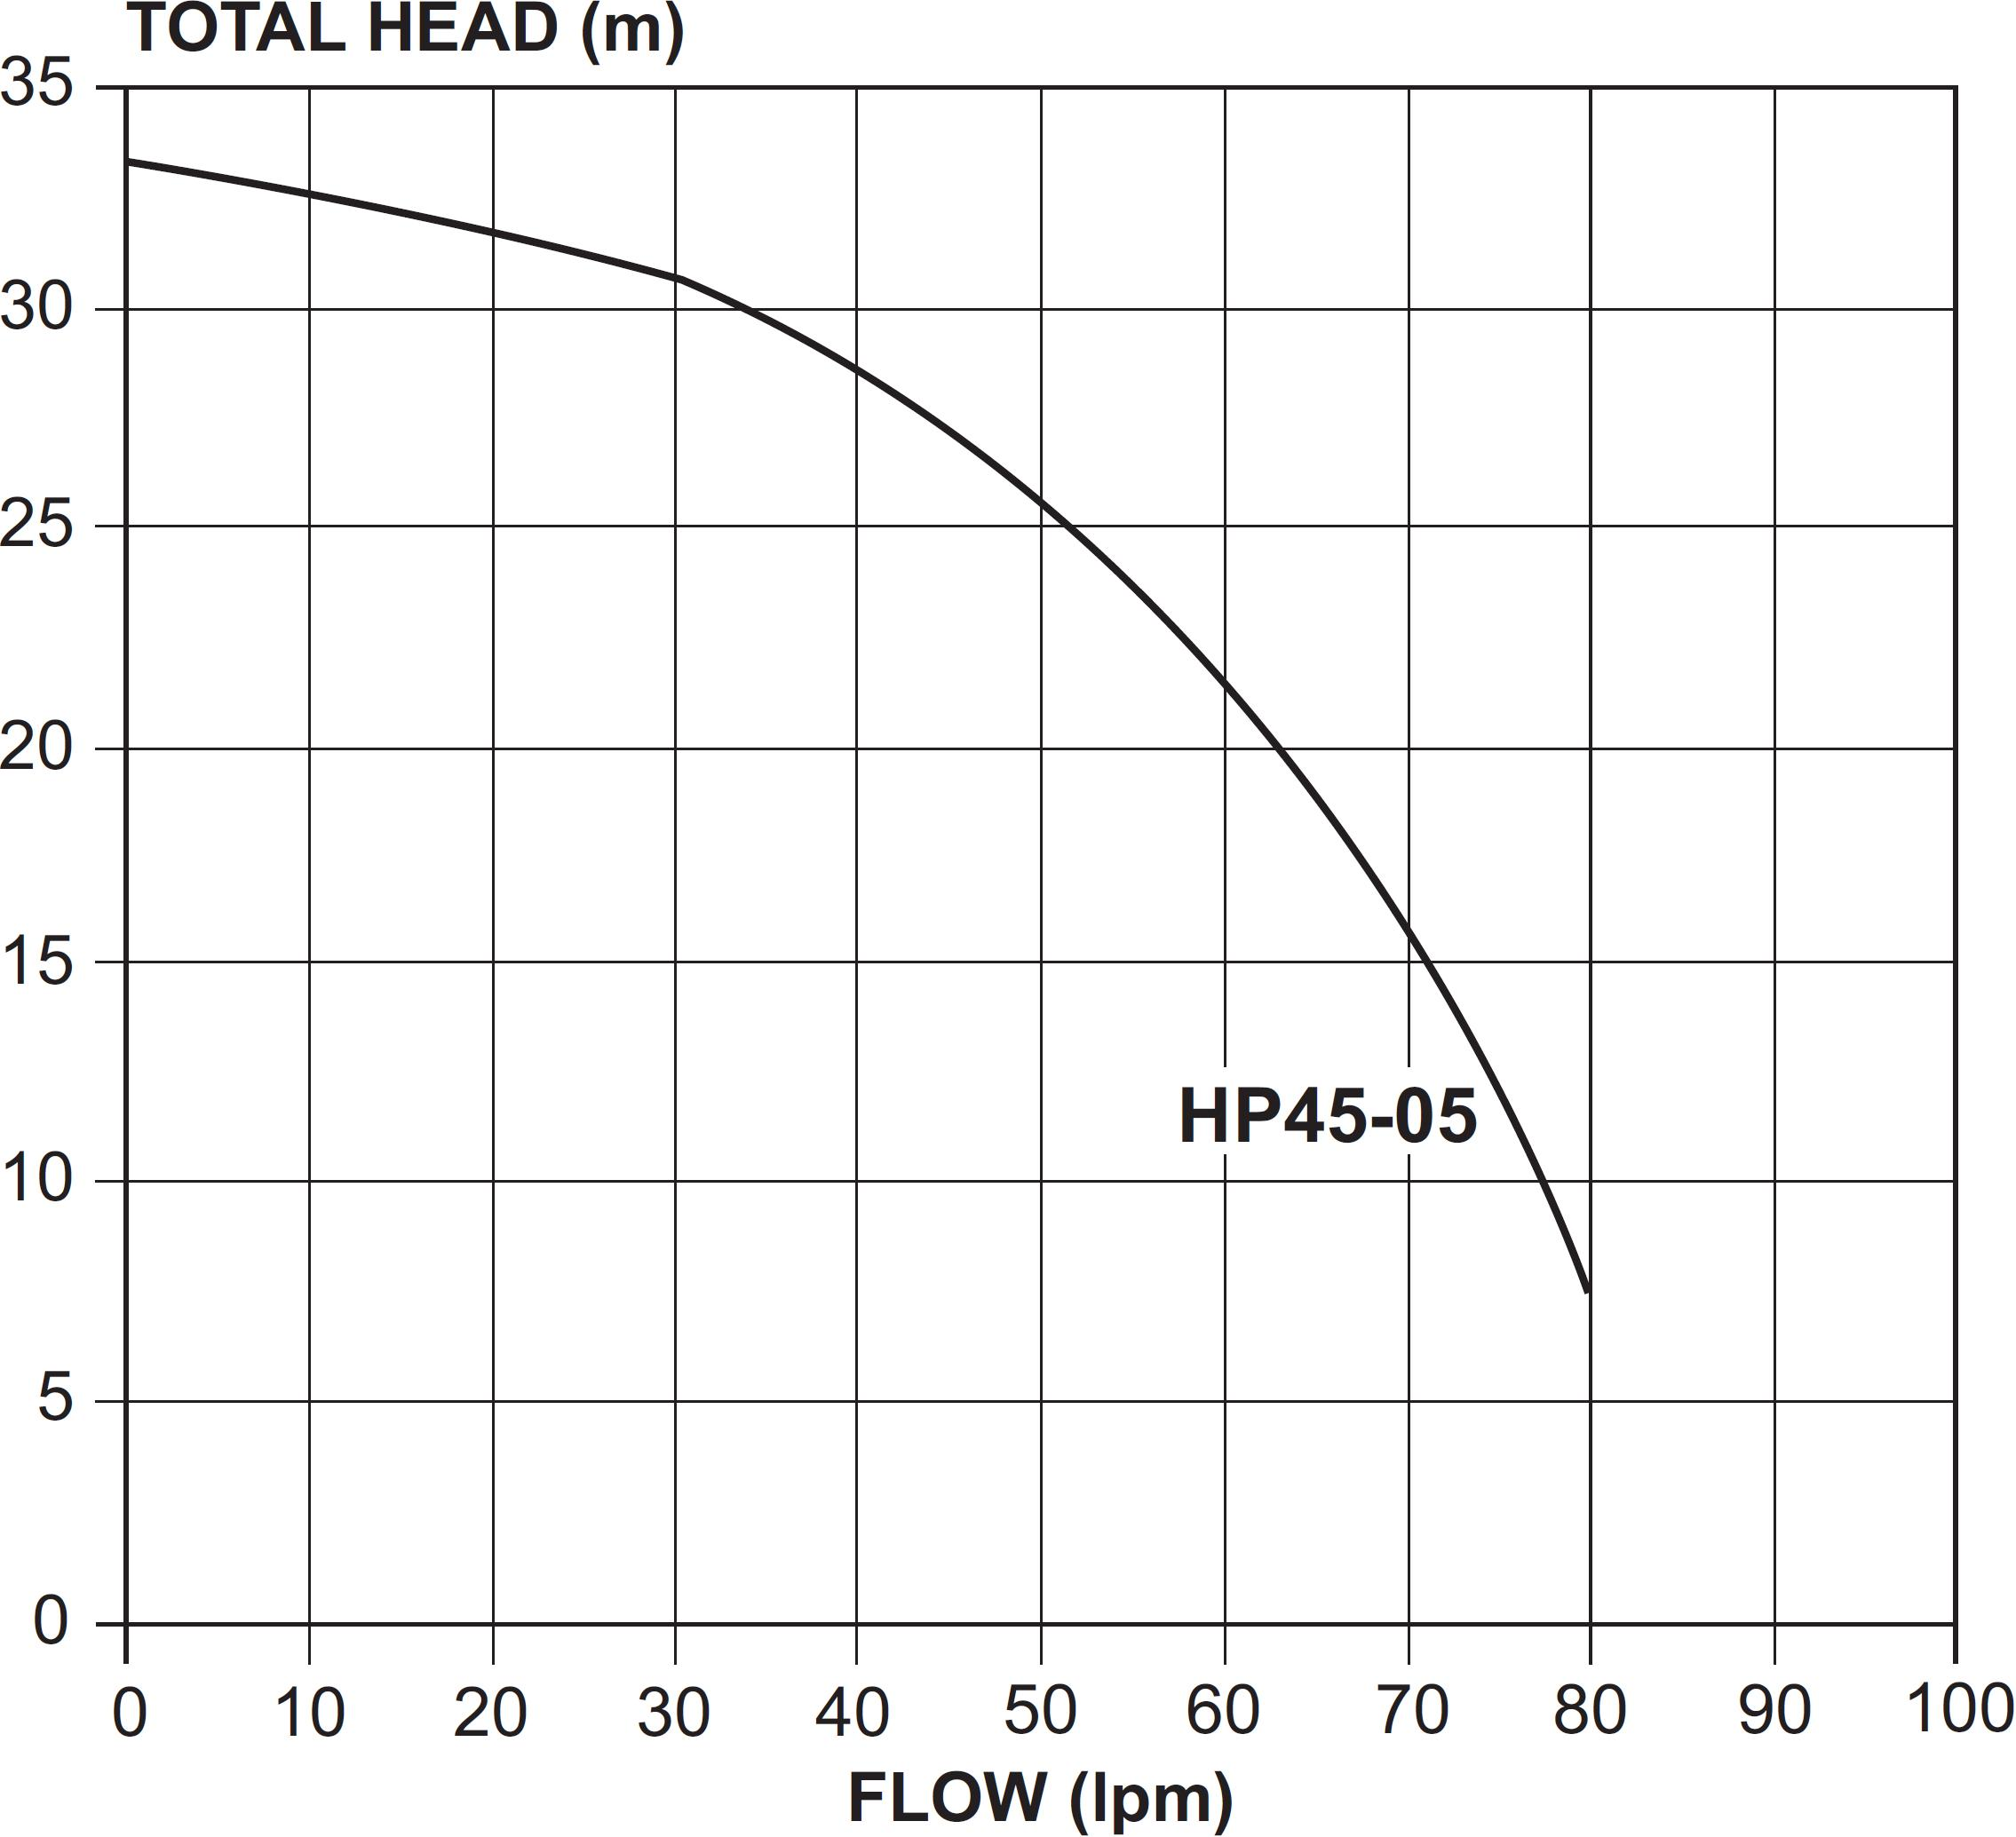 HP45-05 Pump Curve